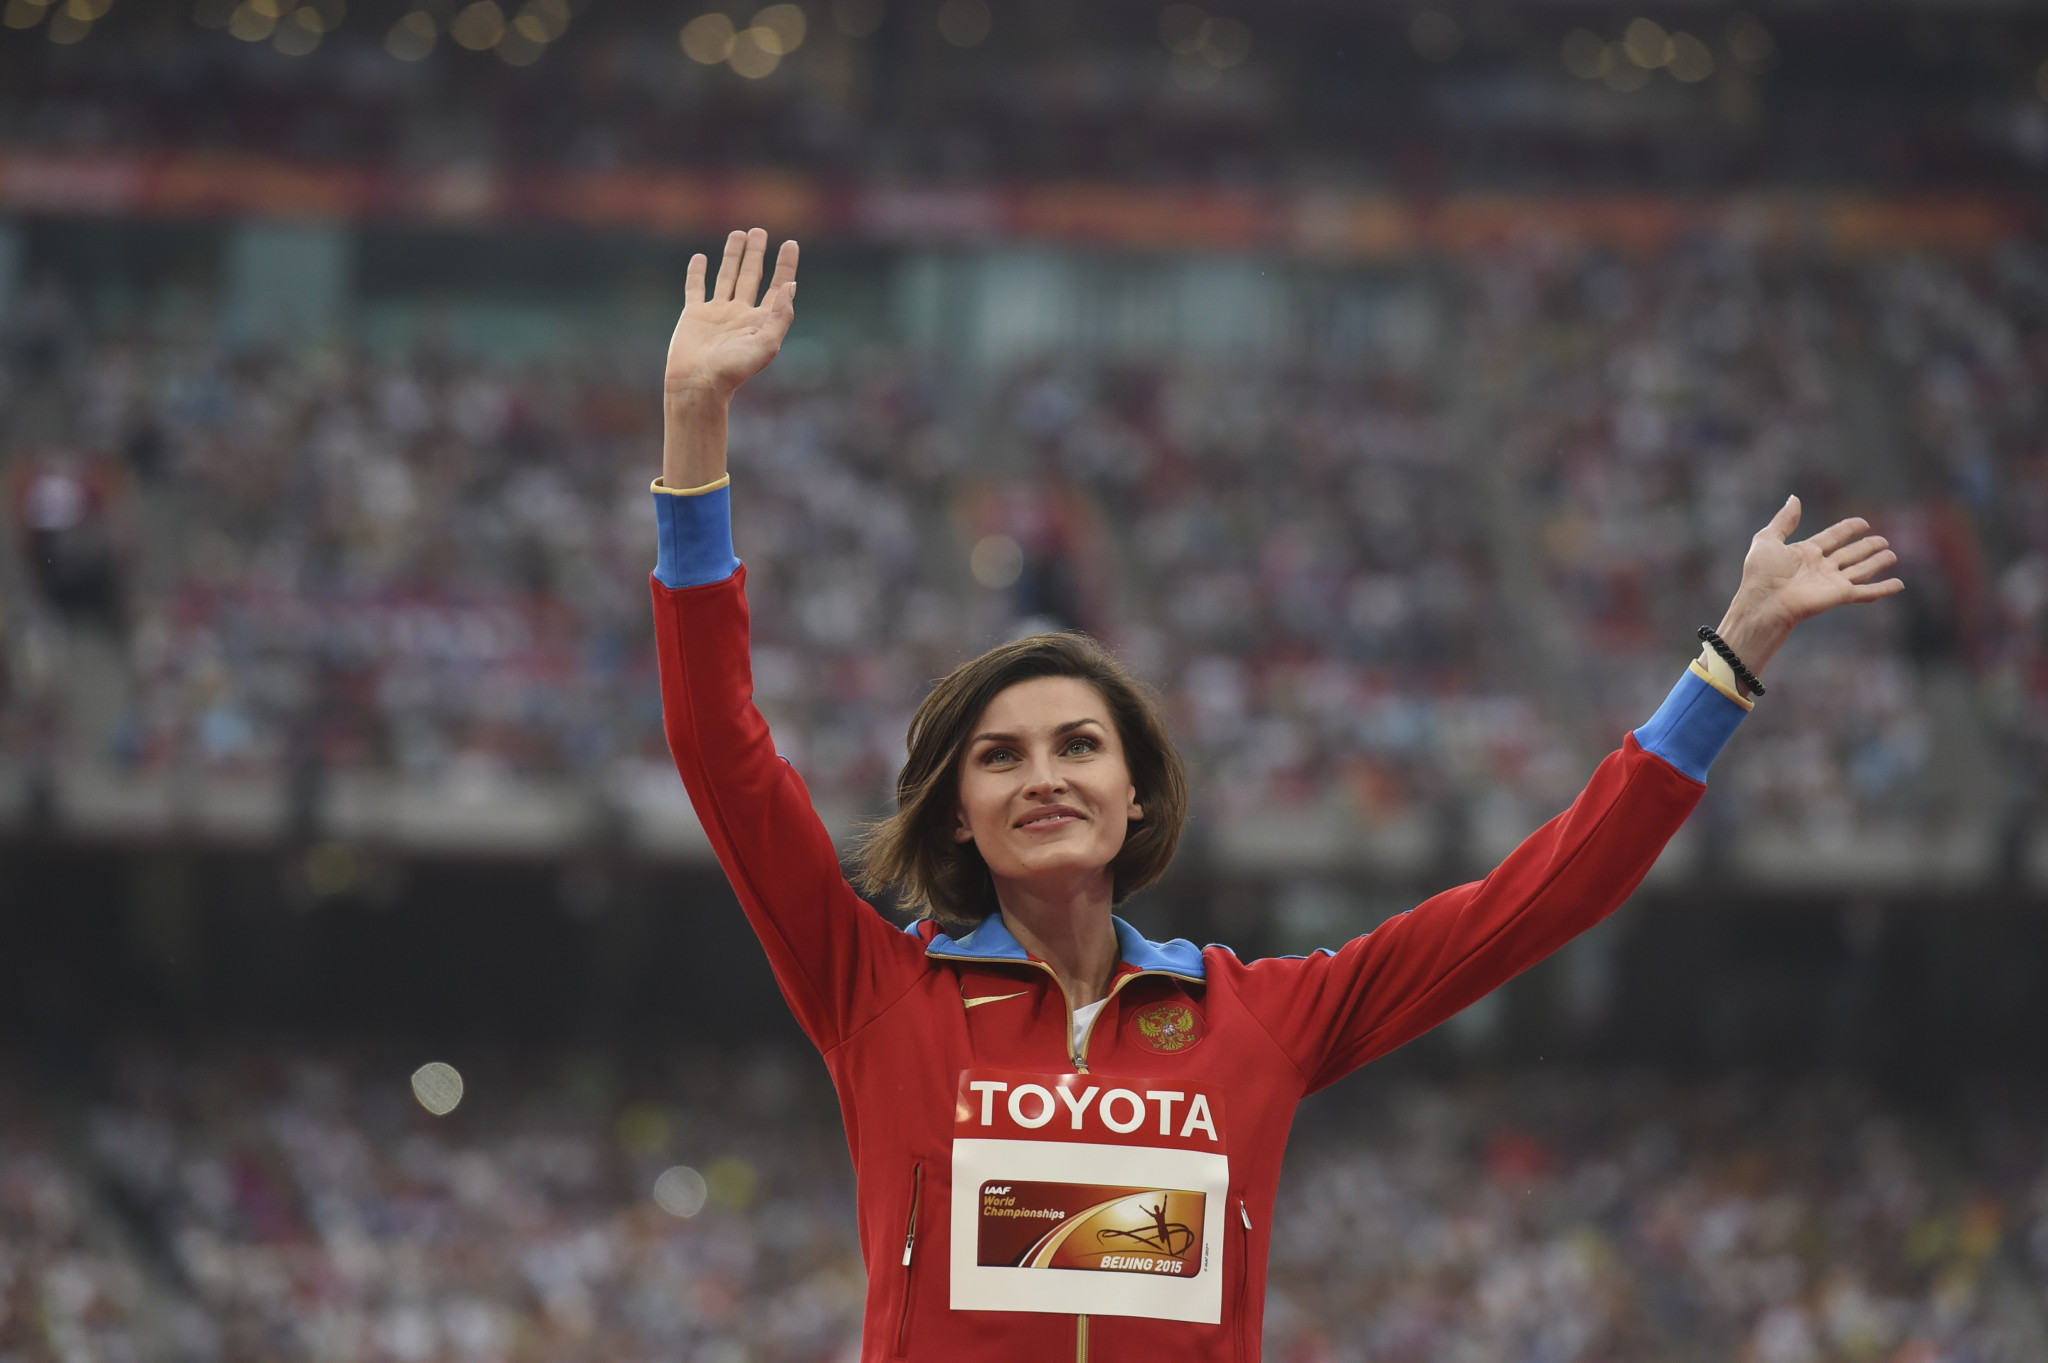 Russian Olympic champions have neutral status refused by IAAF